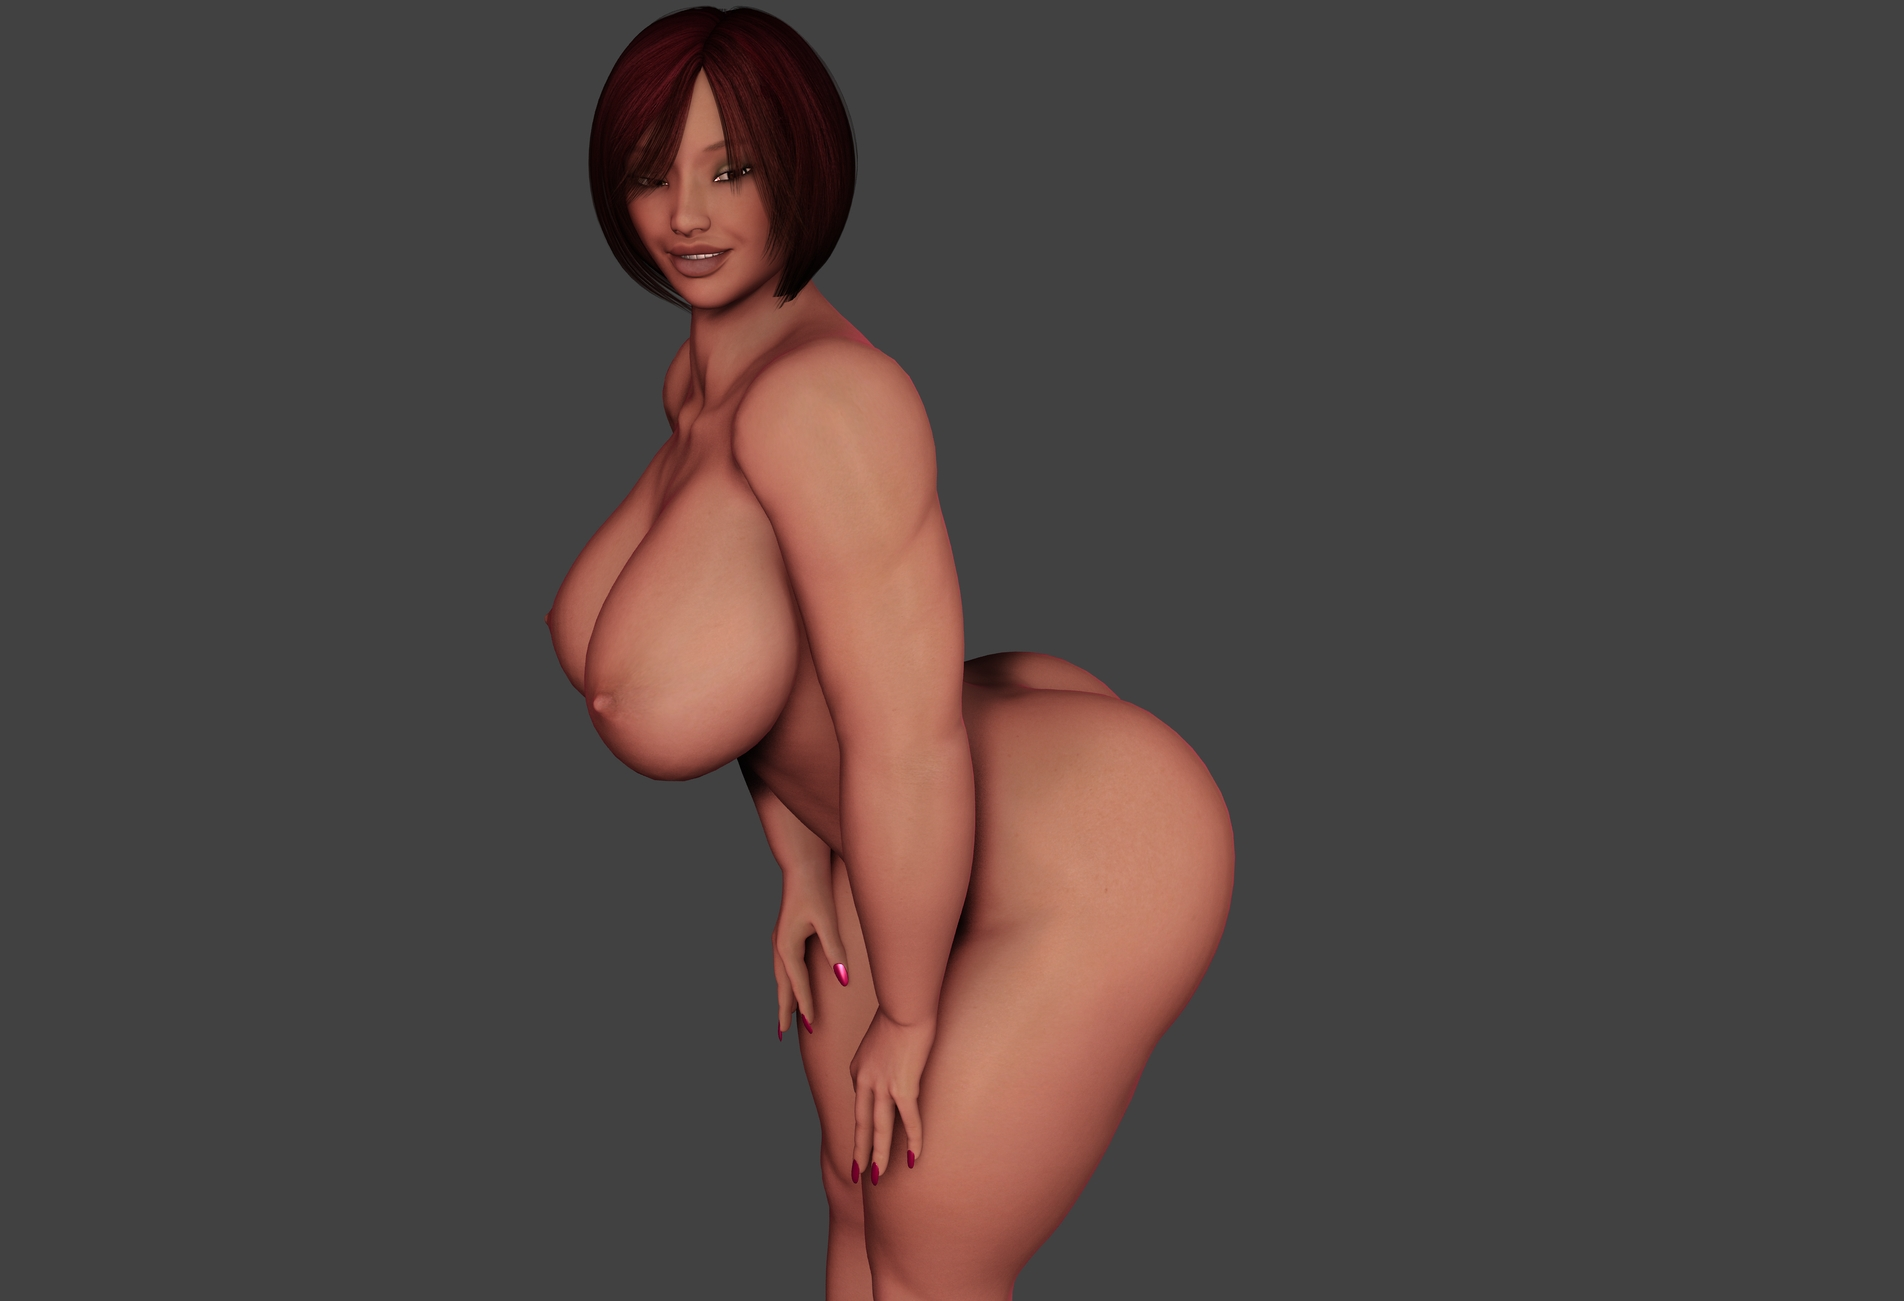 3d big boobs and pussy pict sexy photo